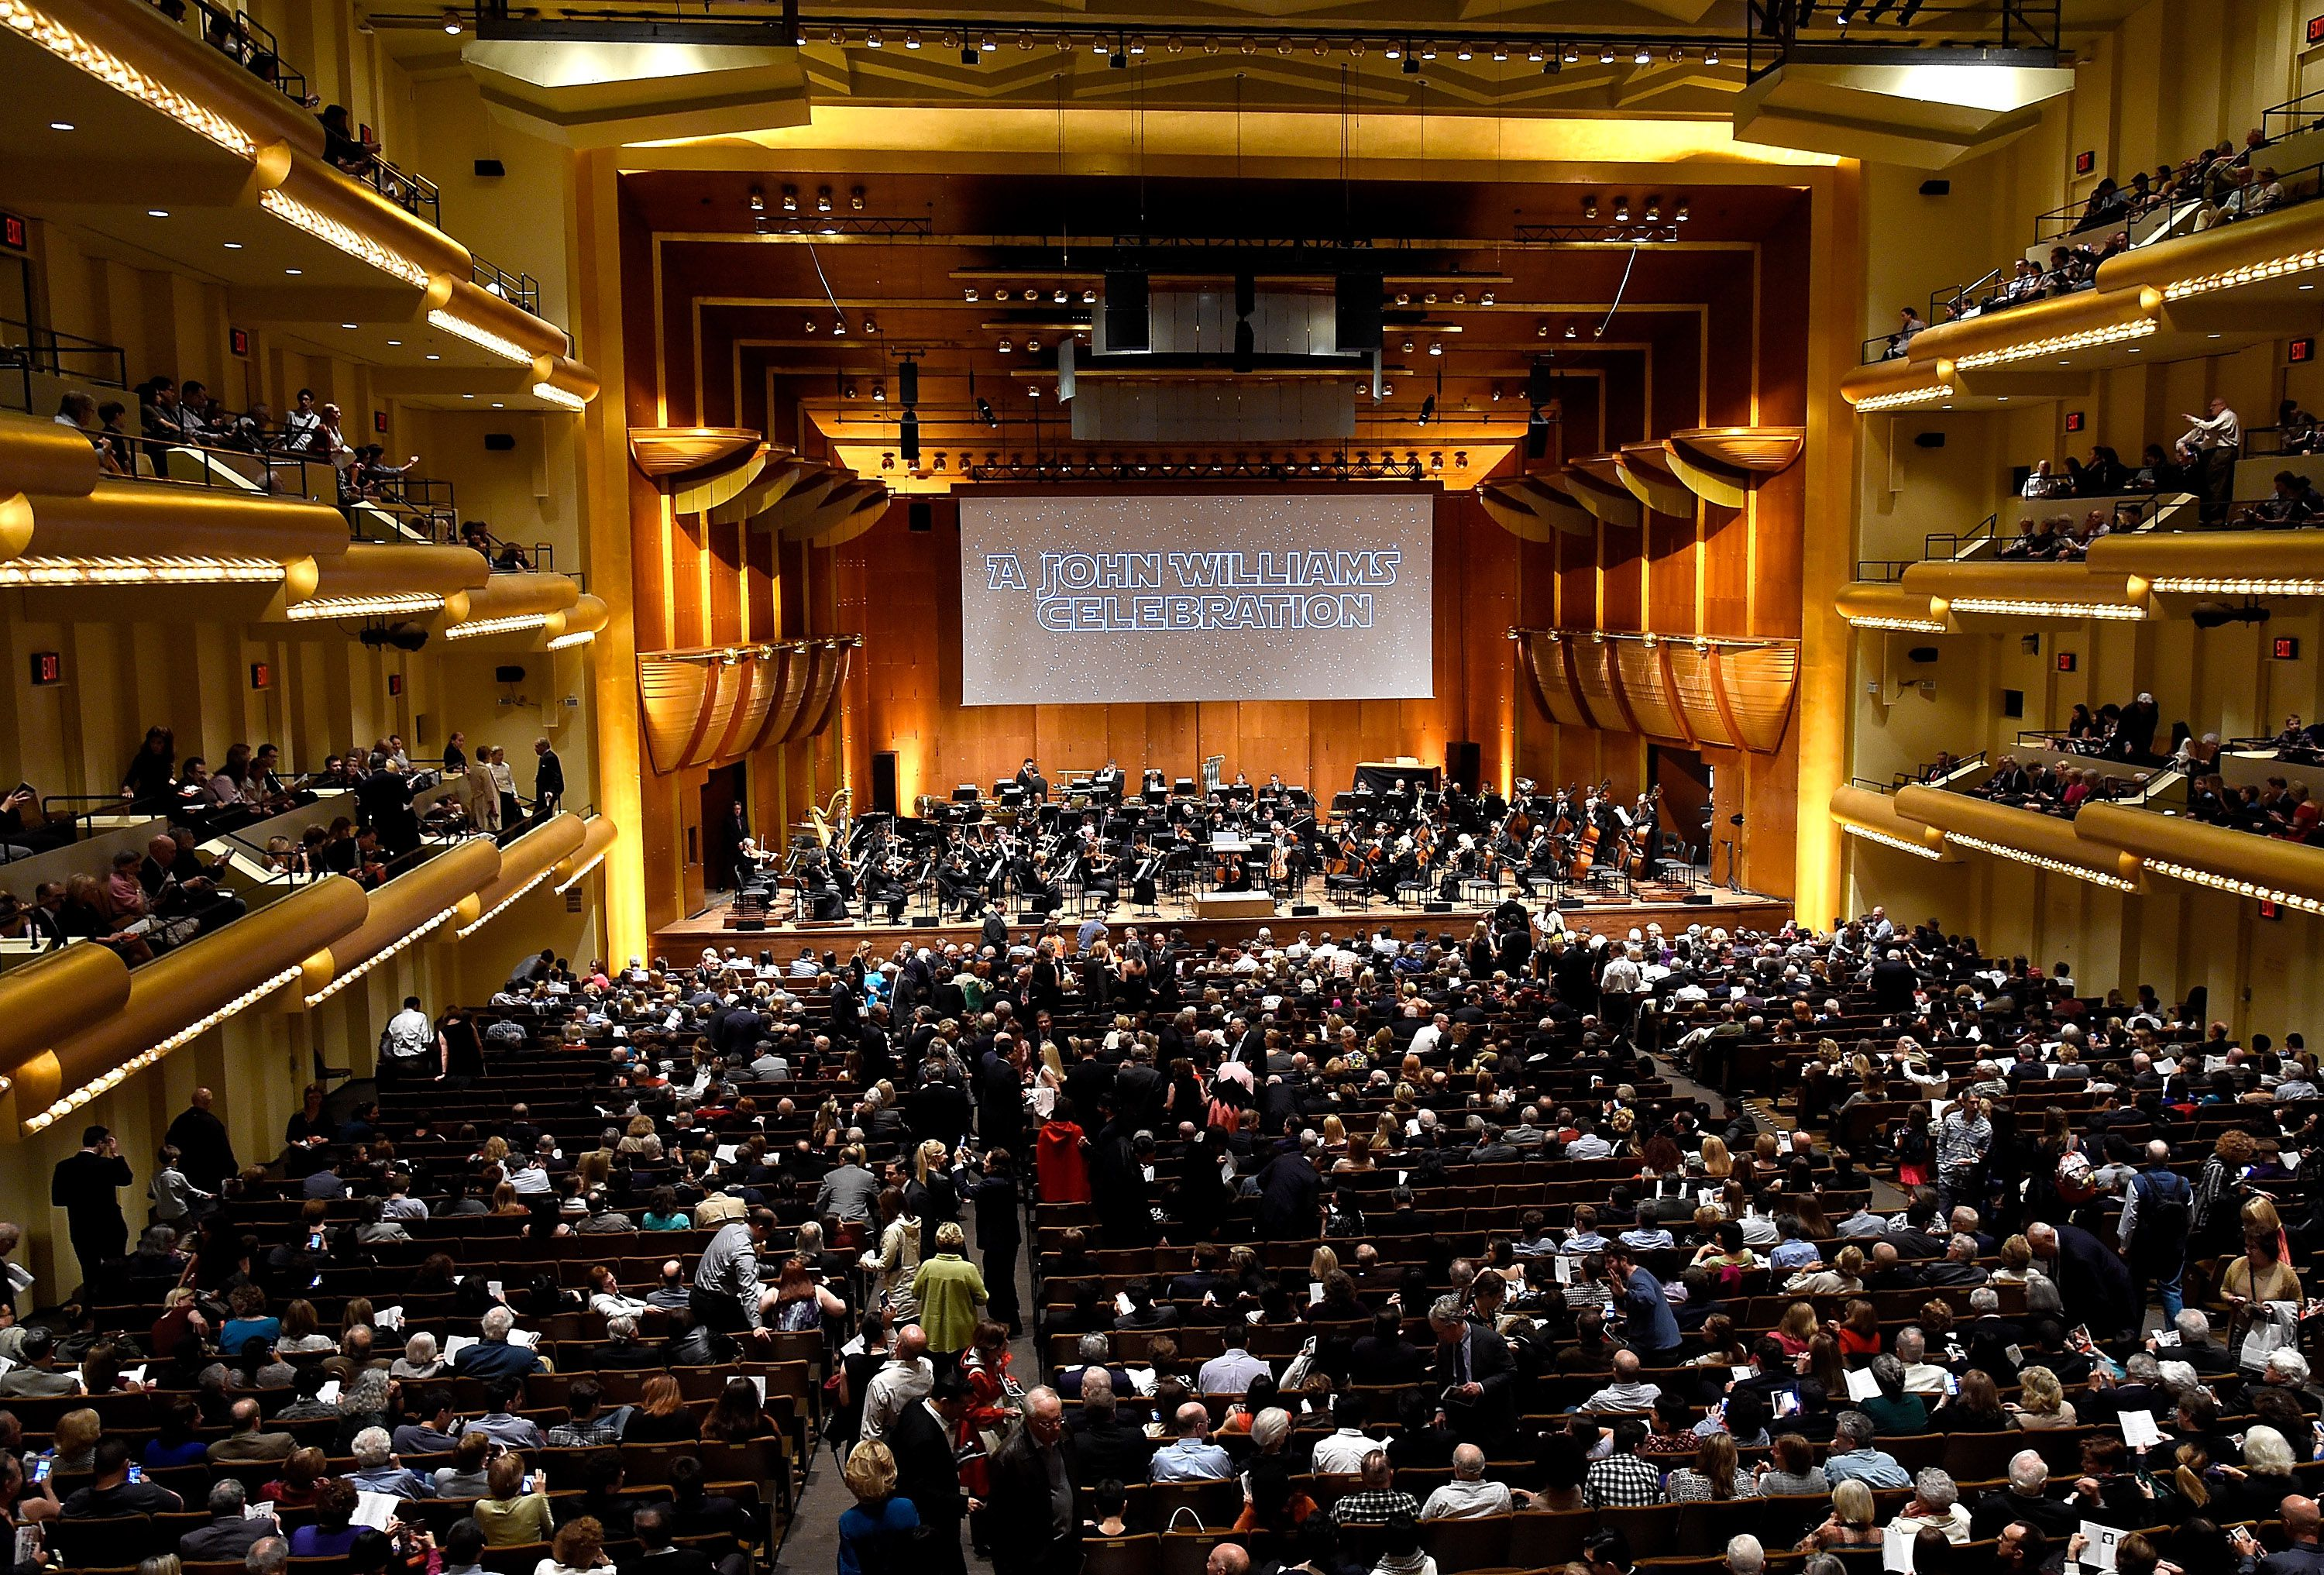 new york philharmonic s spring gala a john williams celebration 593deb825f9b58d58a33c431